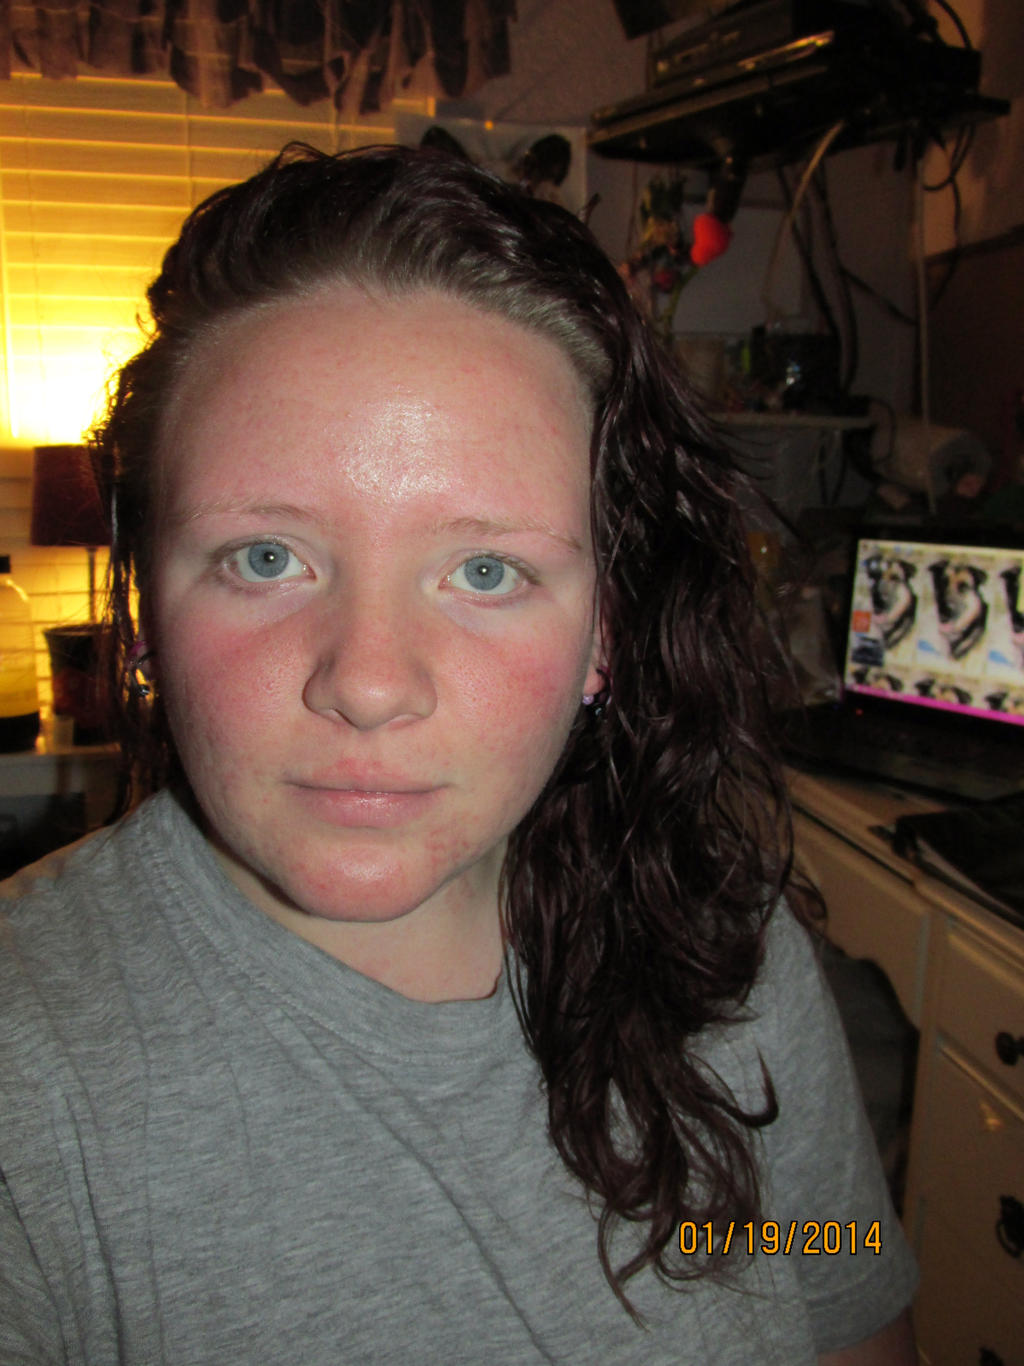 Just Got Out Of the Shower(: by PunkyDoodle96